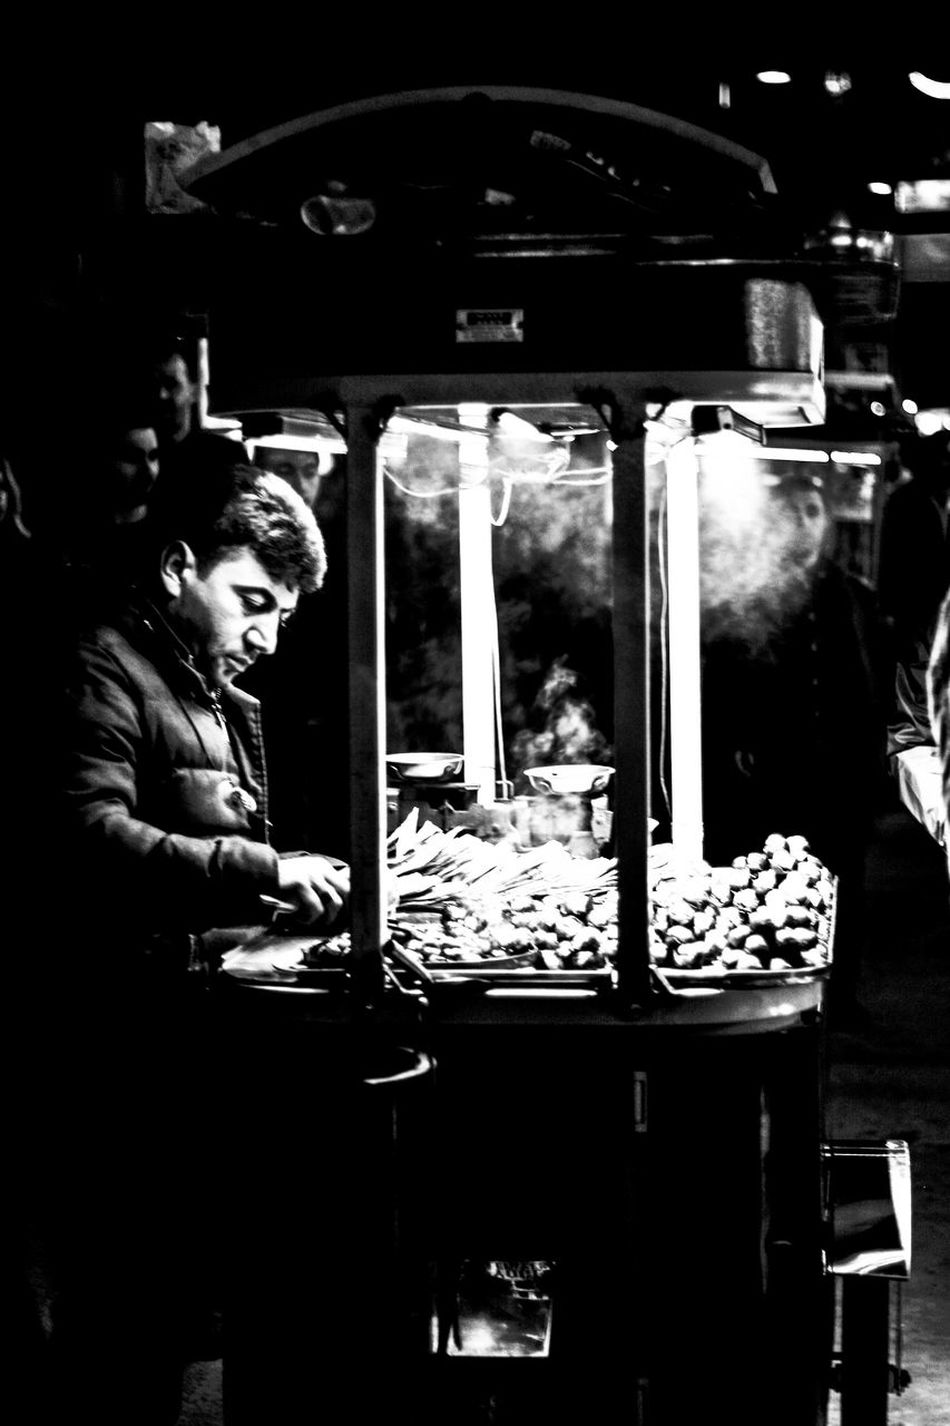 EyeEmNewHere Monochrome Istanbul Turkey Black & White Blackandwhite Black And White Chestnut Taksim Square Istanbul Archival Adults Only Only Men Indoors  Service AdultTaksim Meydanı People Occupation Men Night Fast Food Taksimbeyoglu Taks EyeEm Diversity